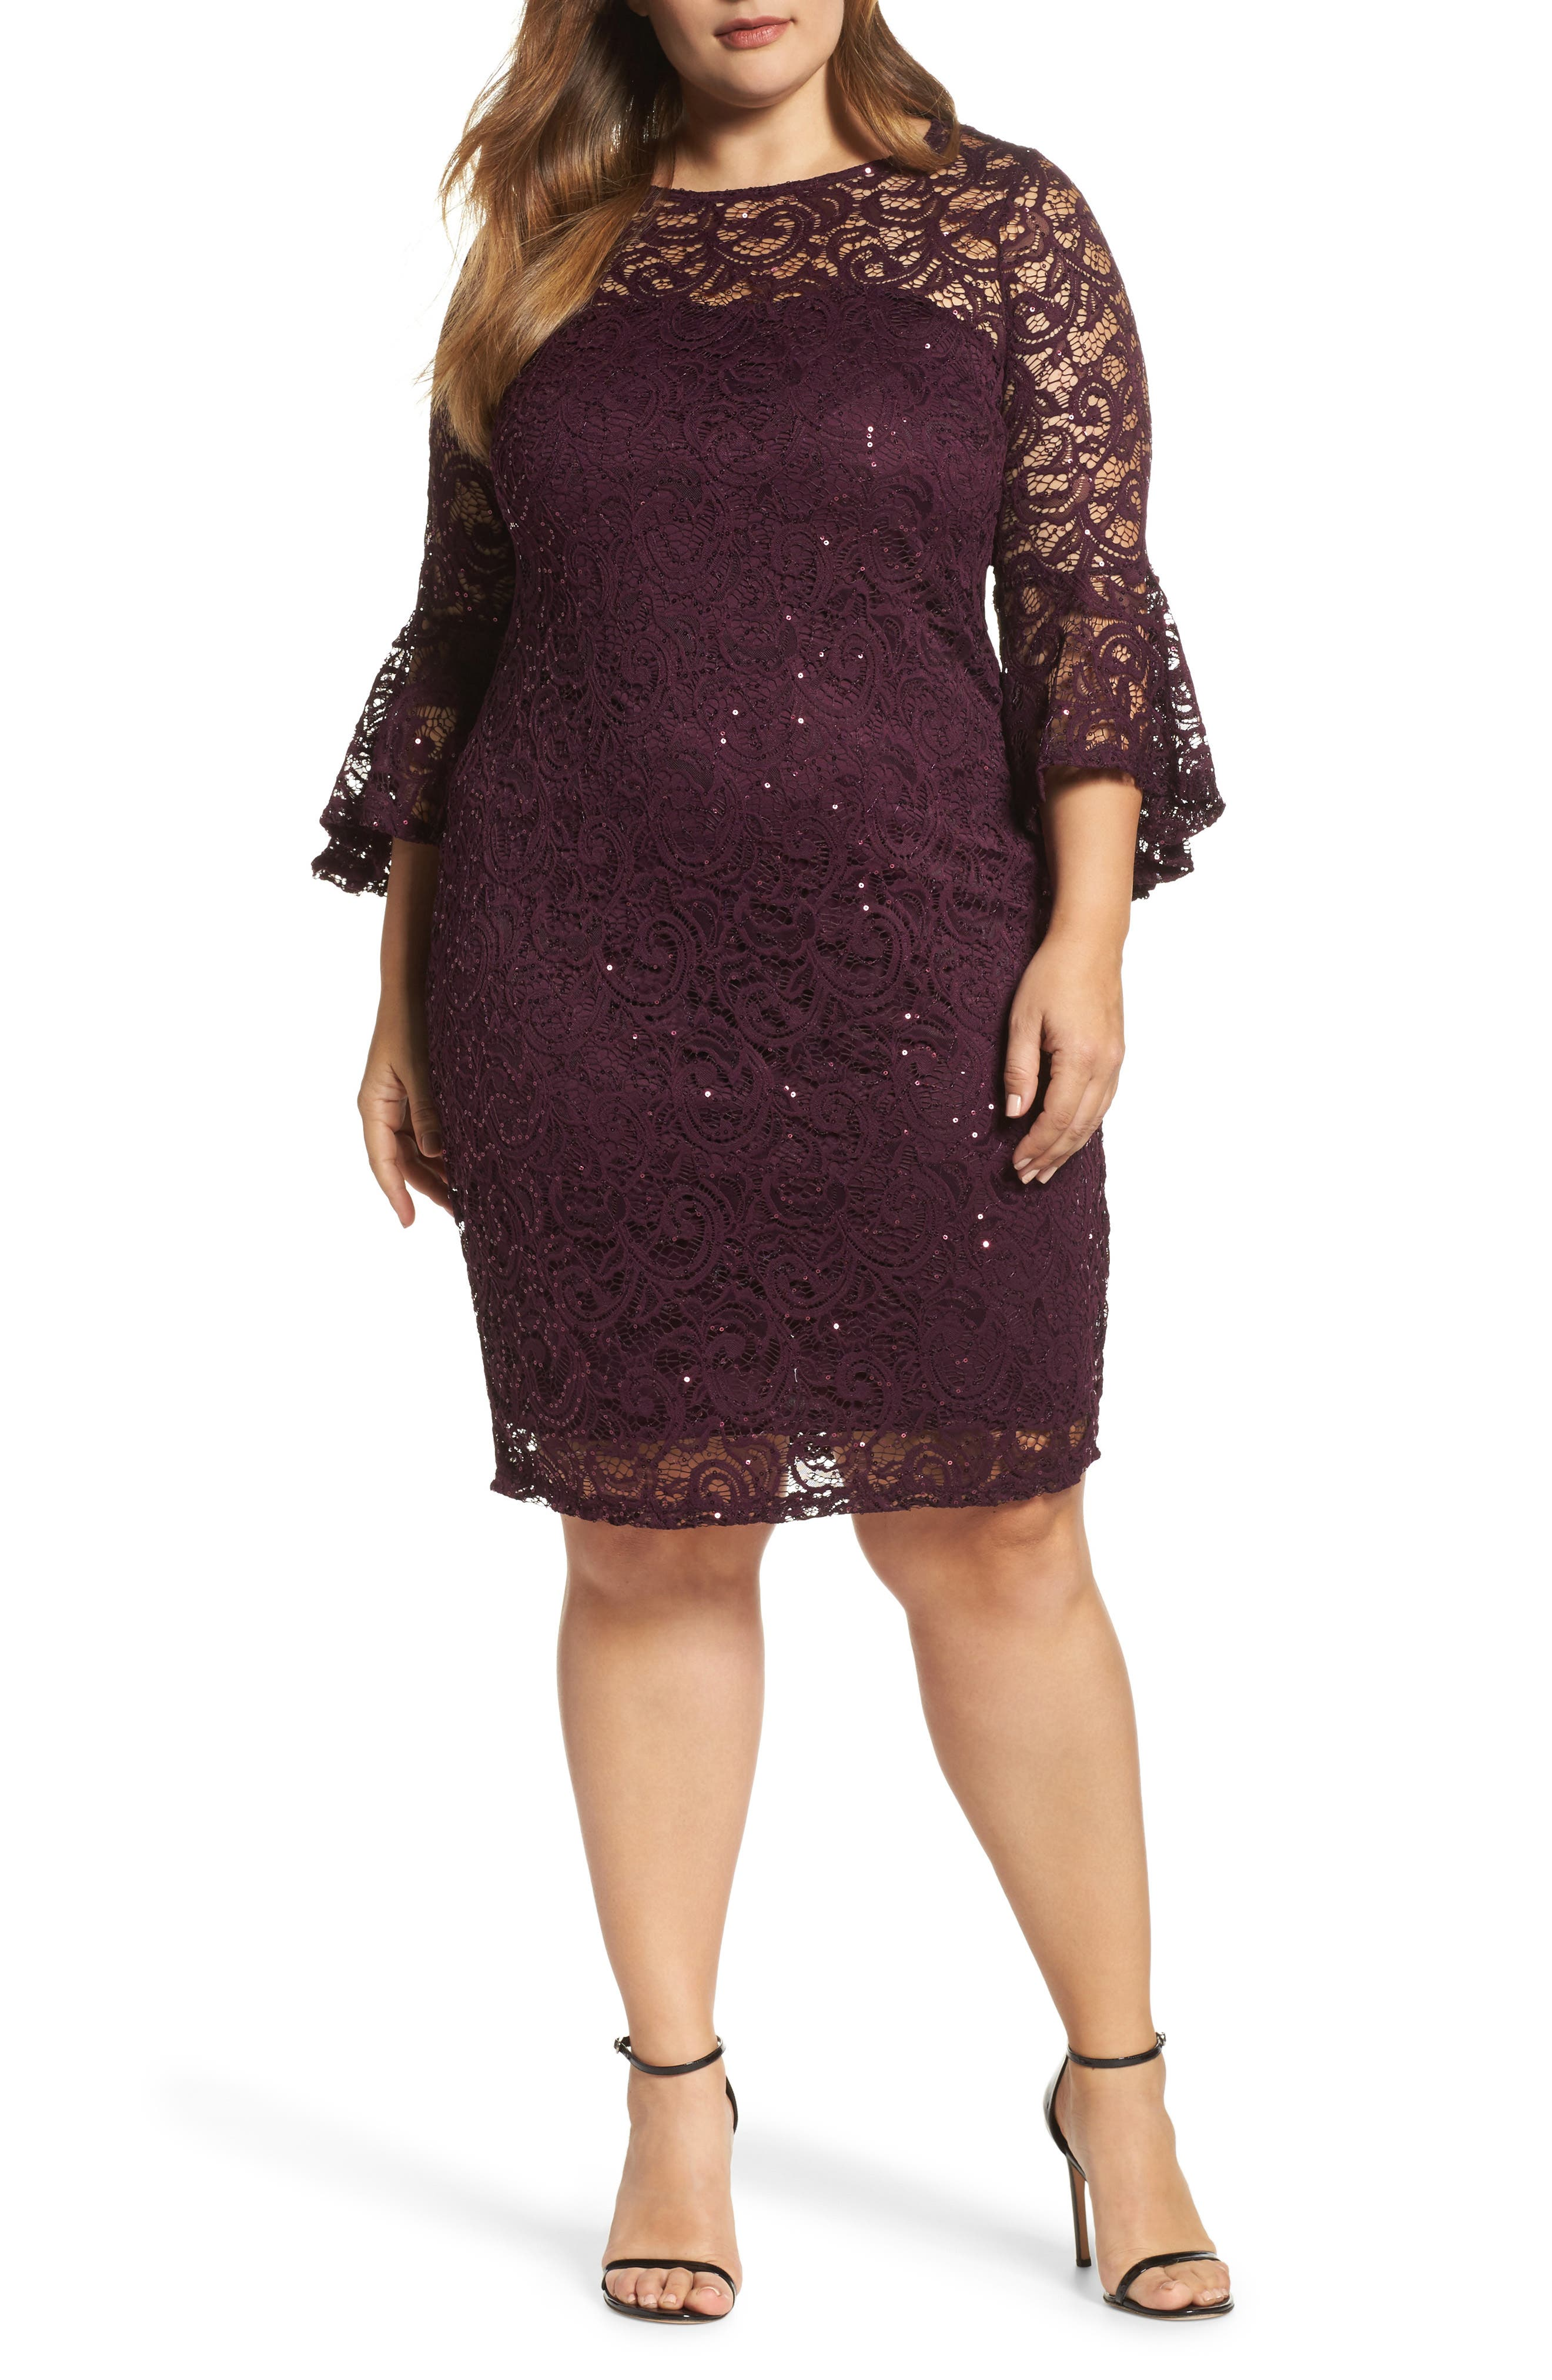 Main Image - Marina Sequin Lace Bell Sleeve Dress (Plus Size)